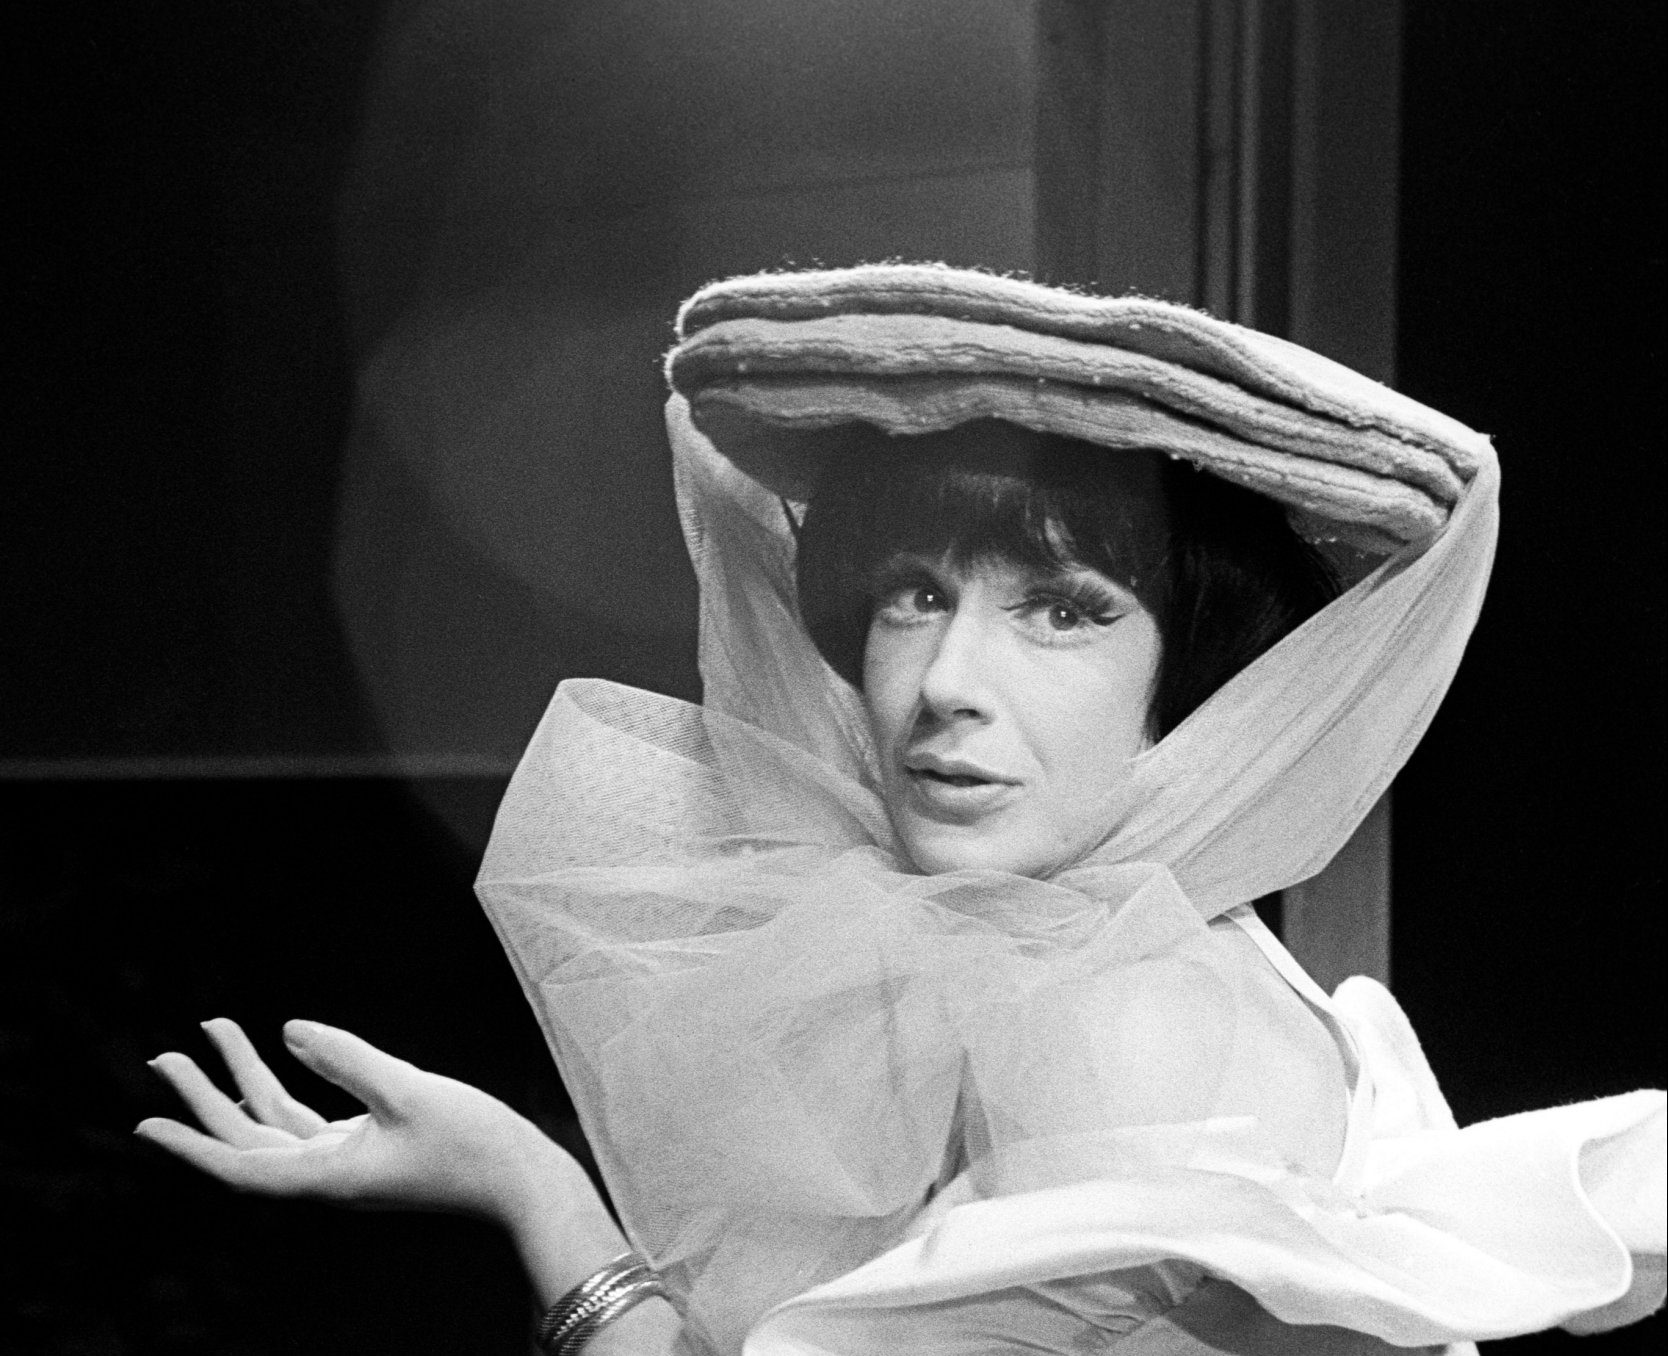 File photo dated 16/09/1963 of Fenella Fielding in costume during a rehearsal for her musical show So Much to Remember at the Vaudeville Theatre, London. The former Carry On actress has died aged 90, a spokeswoman said. PRESS ASSOCIATION Photo. Issue date: Tuesday September 11, 2018. See PA story DEATH Fielding. Photo credit should read: PA Wire